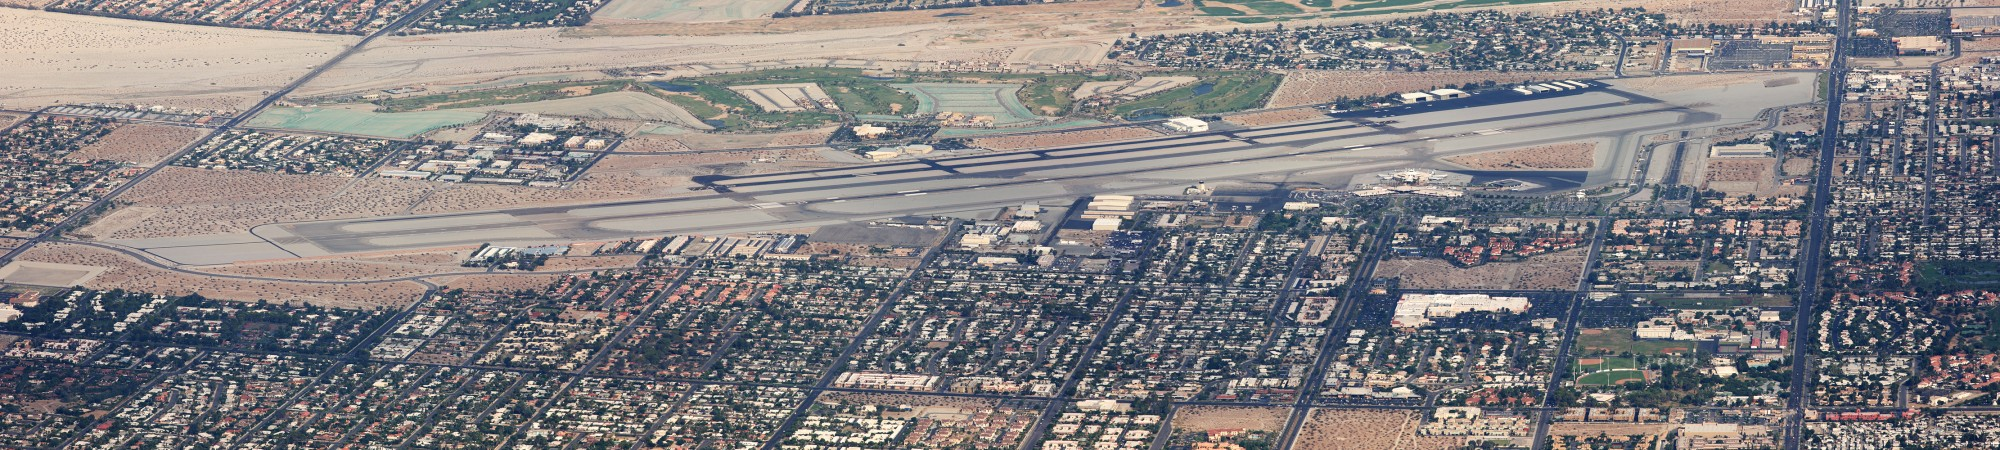 Palm springs airport aerial view